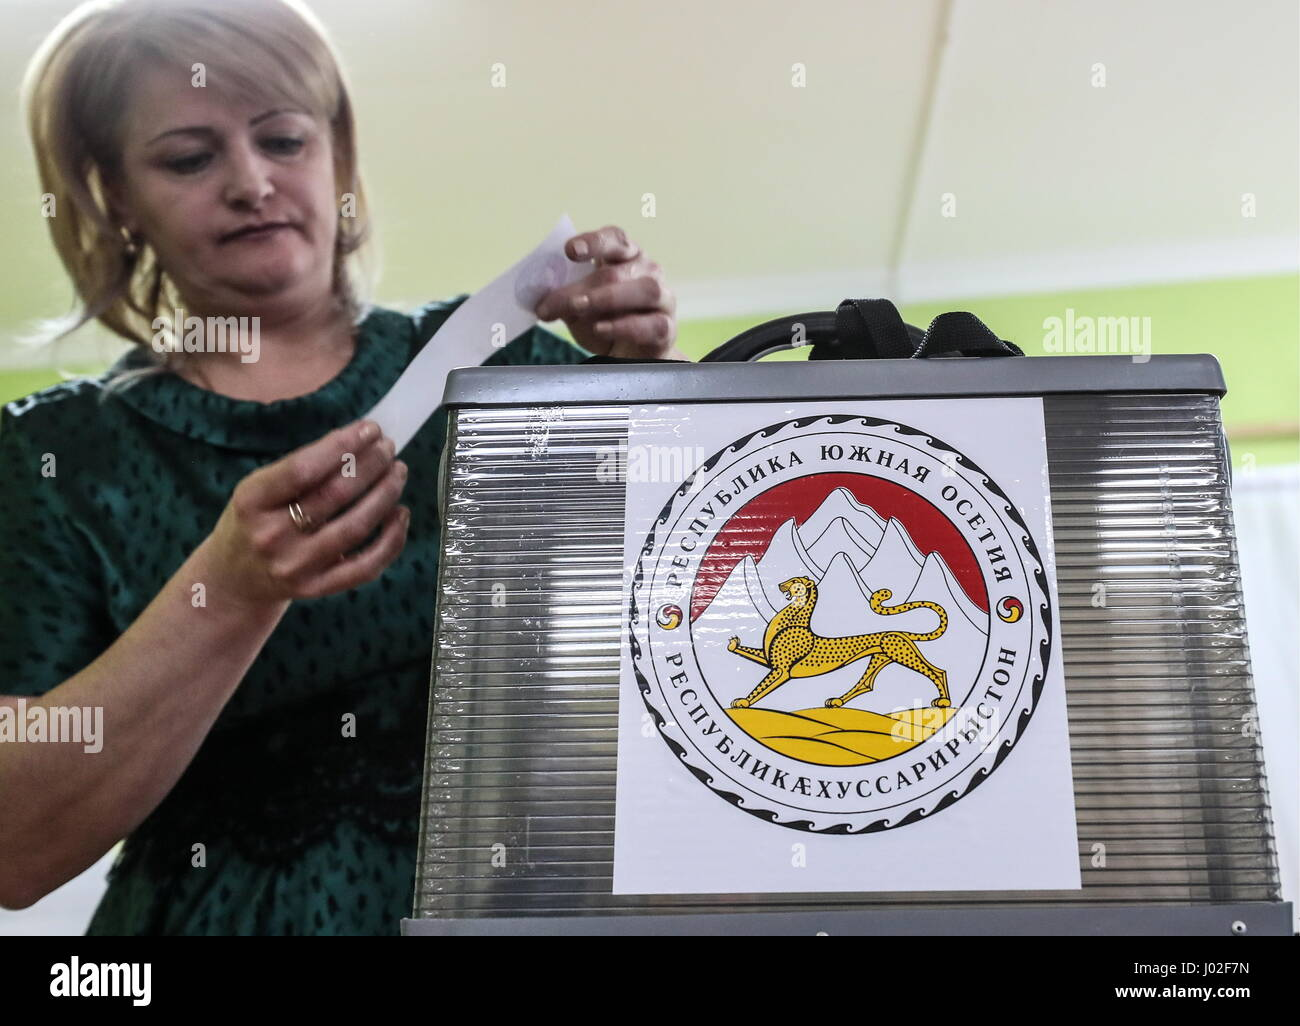 Tskhinval, South Ossetia. 9th Apr, 2017. An Election Commission member seals up a ballot box ahead of the 2017 South - Stock Image